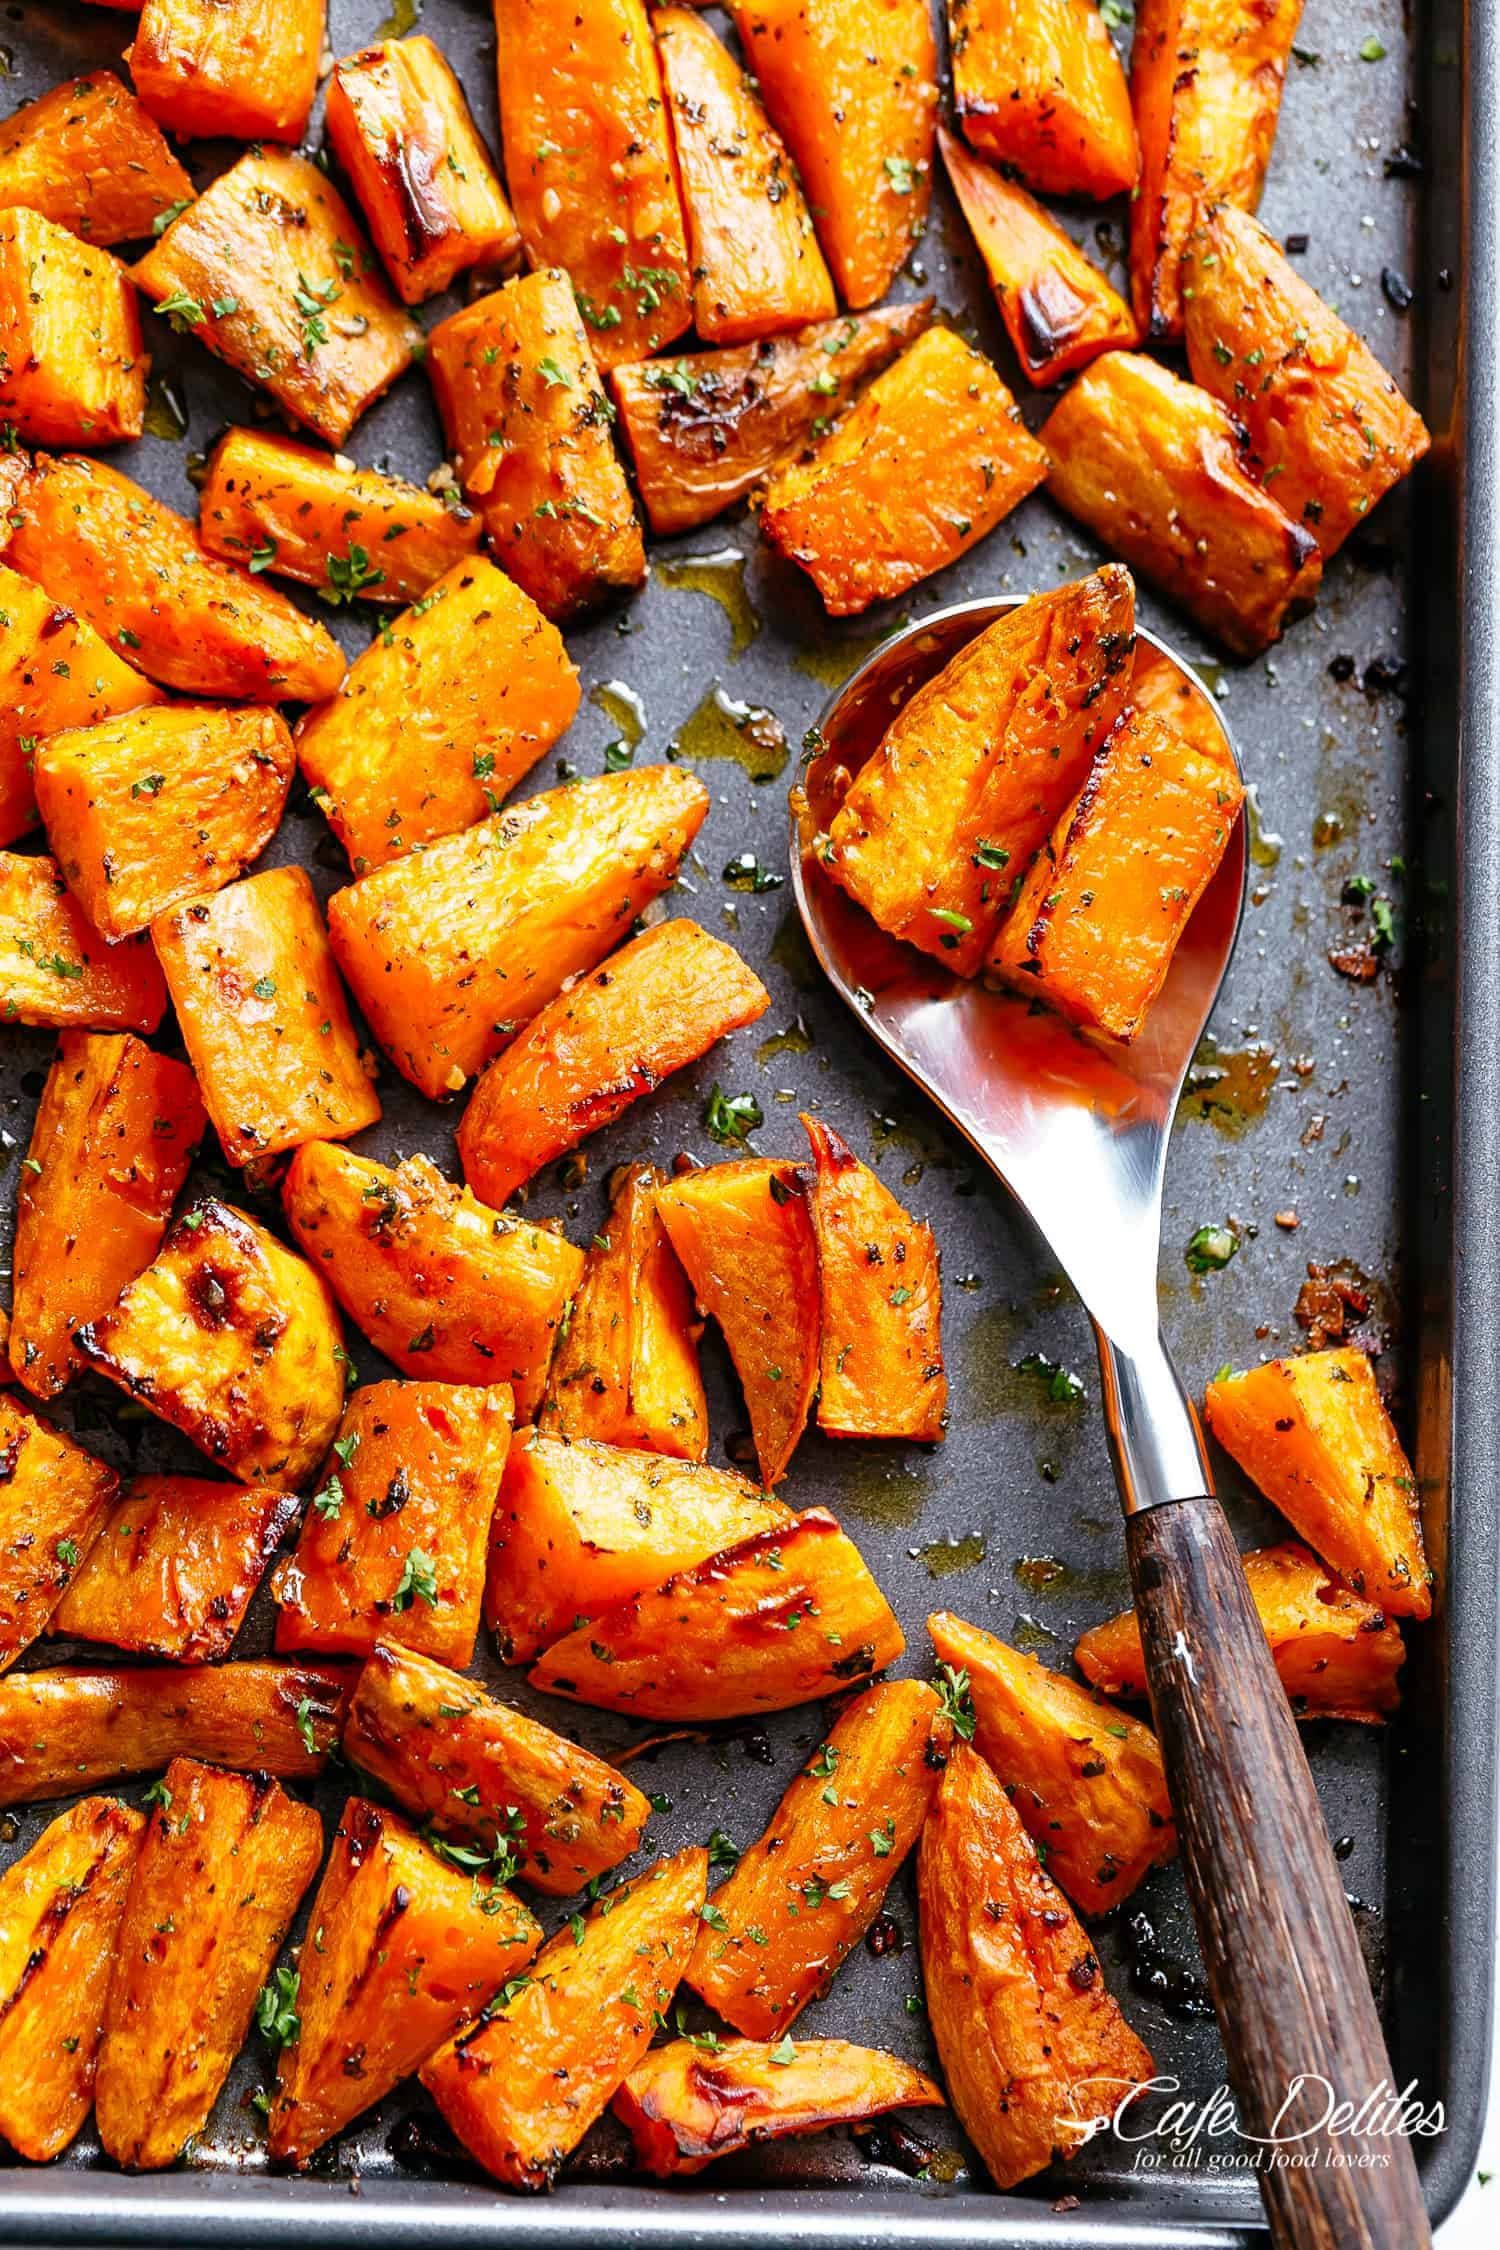 Easy Roasted Sweet Potatoes with only 5 ingredients!